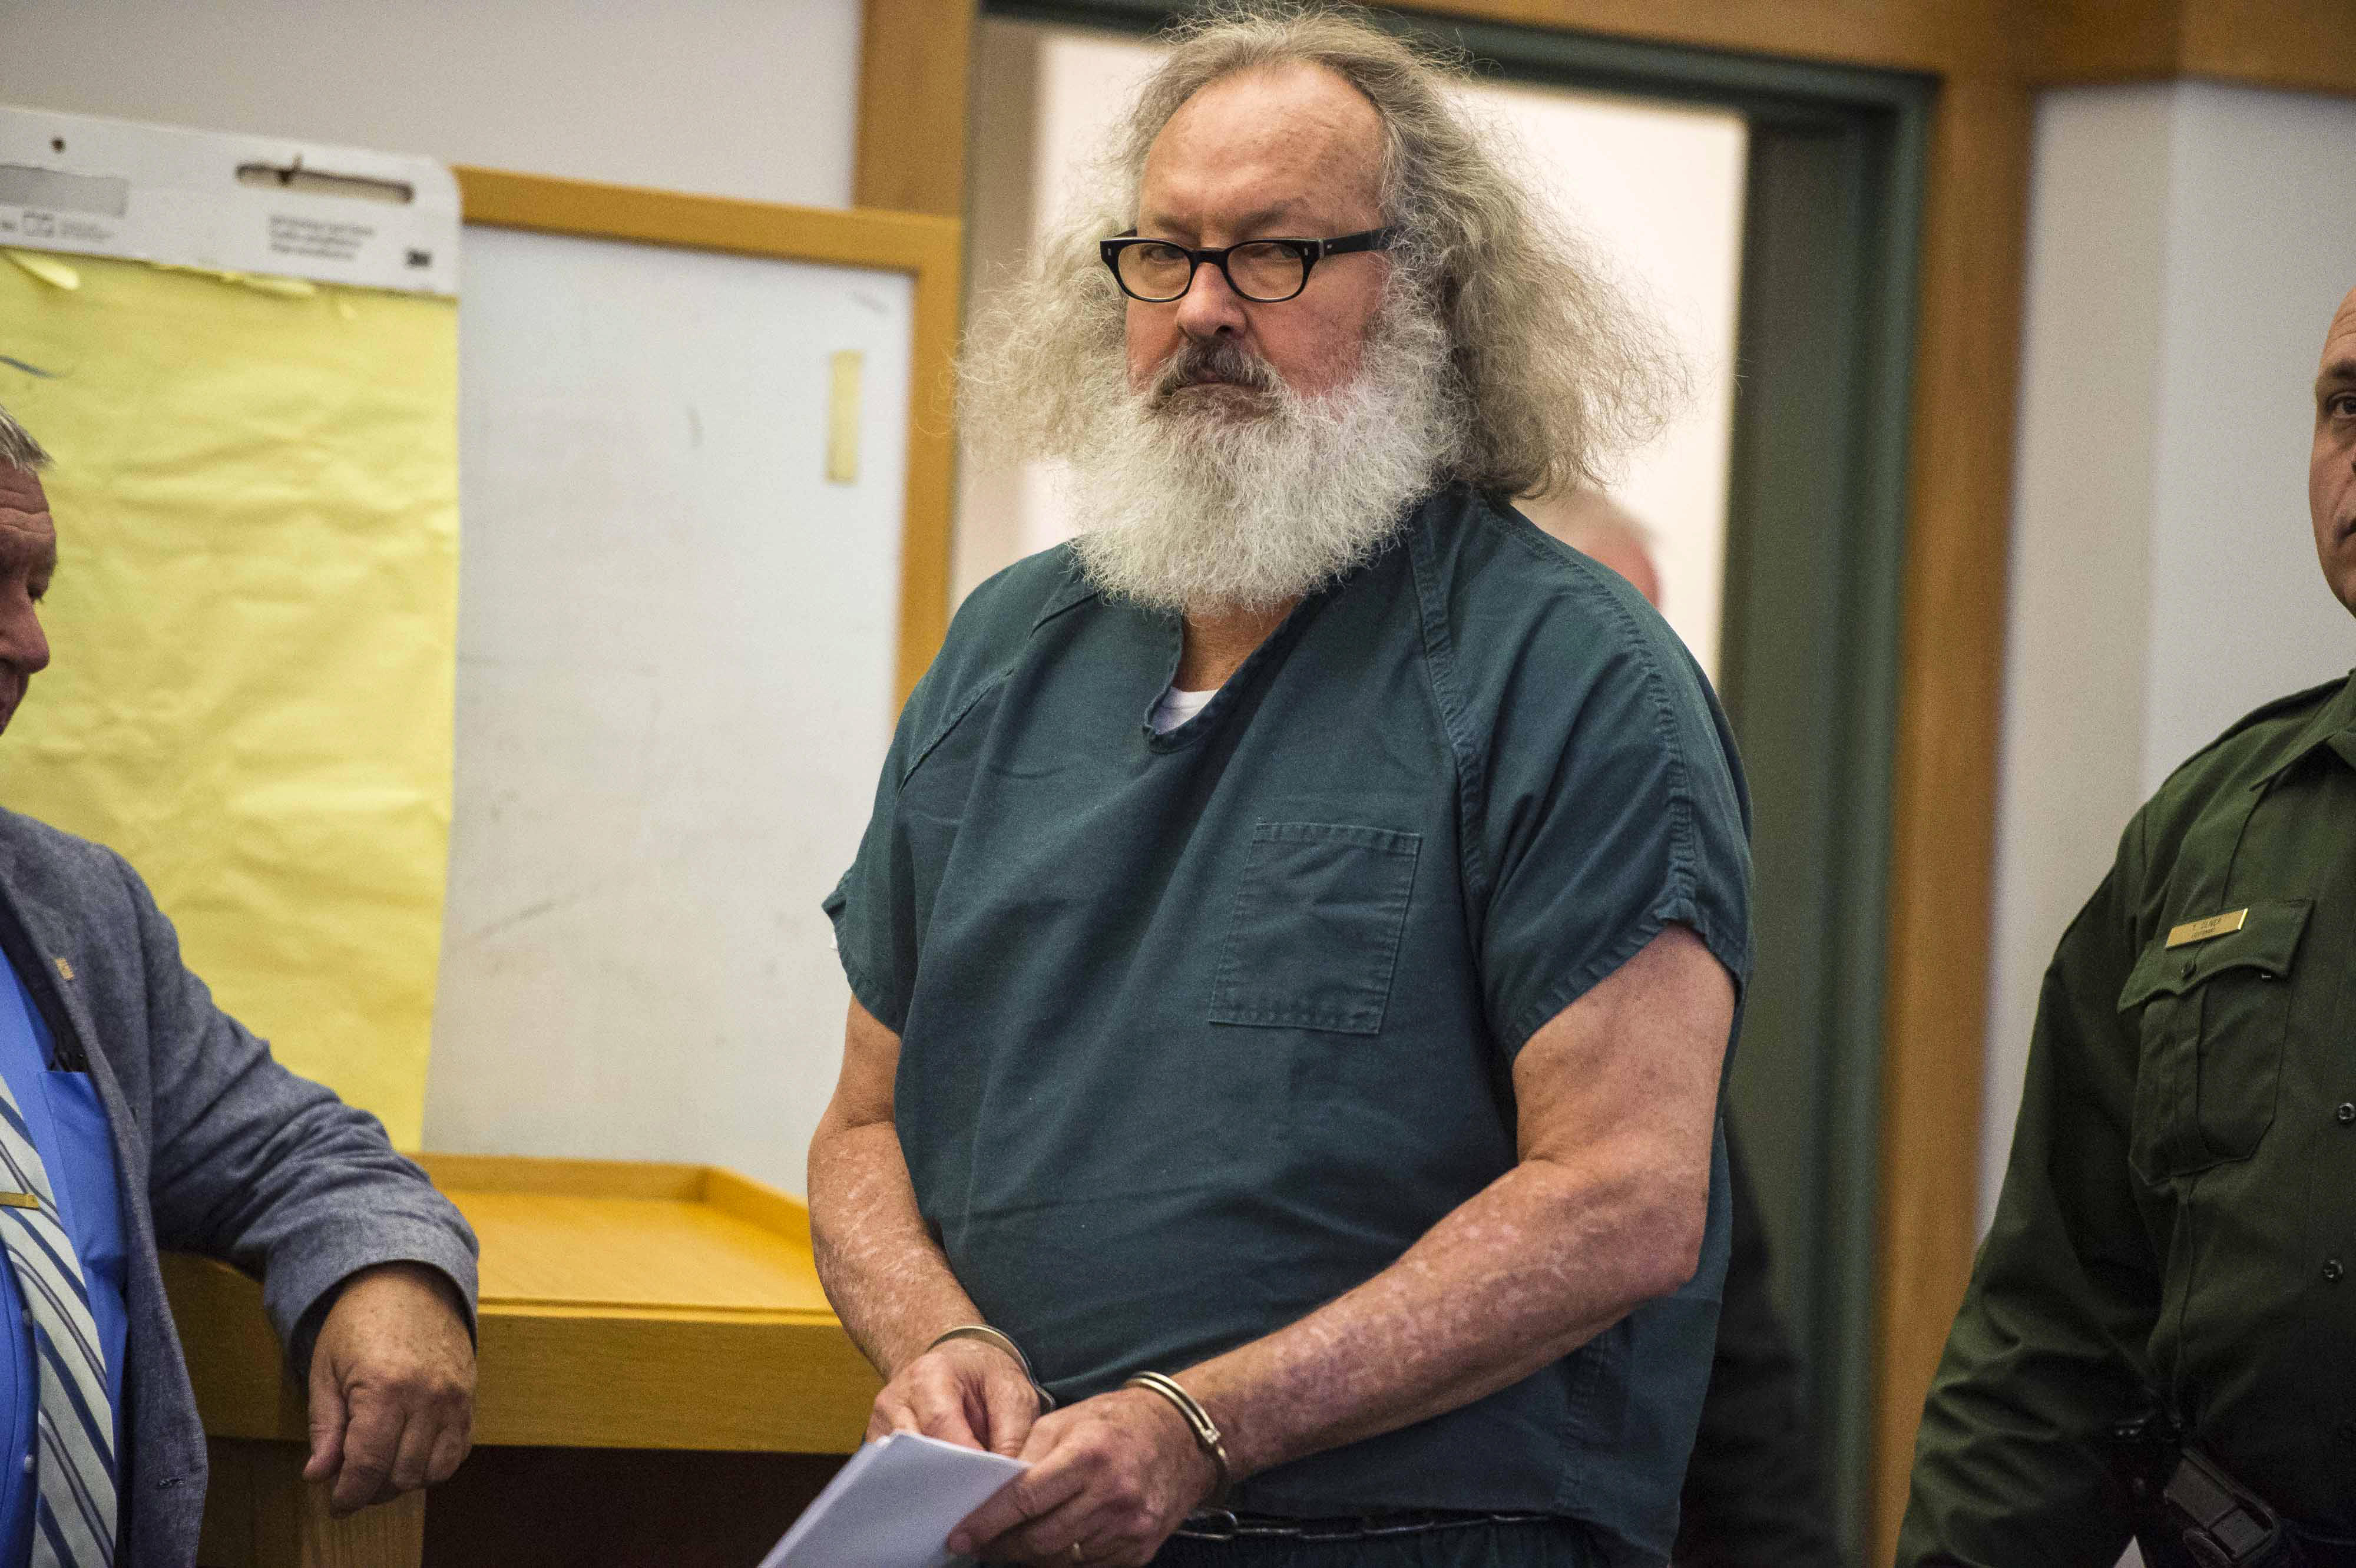 Actor Randy Quaid appears in Vermont Superior Court in St. Albans, Vt., on Thursday, Oct. 15, 2015. A Vermont judge has released Quaid and his wife Evi from custody and the couple says they'll now address 5-year-old criminal charges in California. (Glenn Russell The Burlington Free Press via AP, Pool)